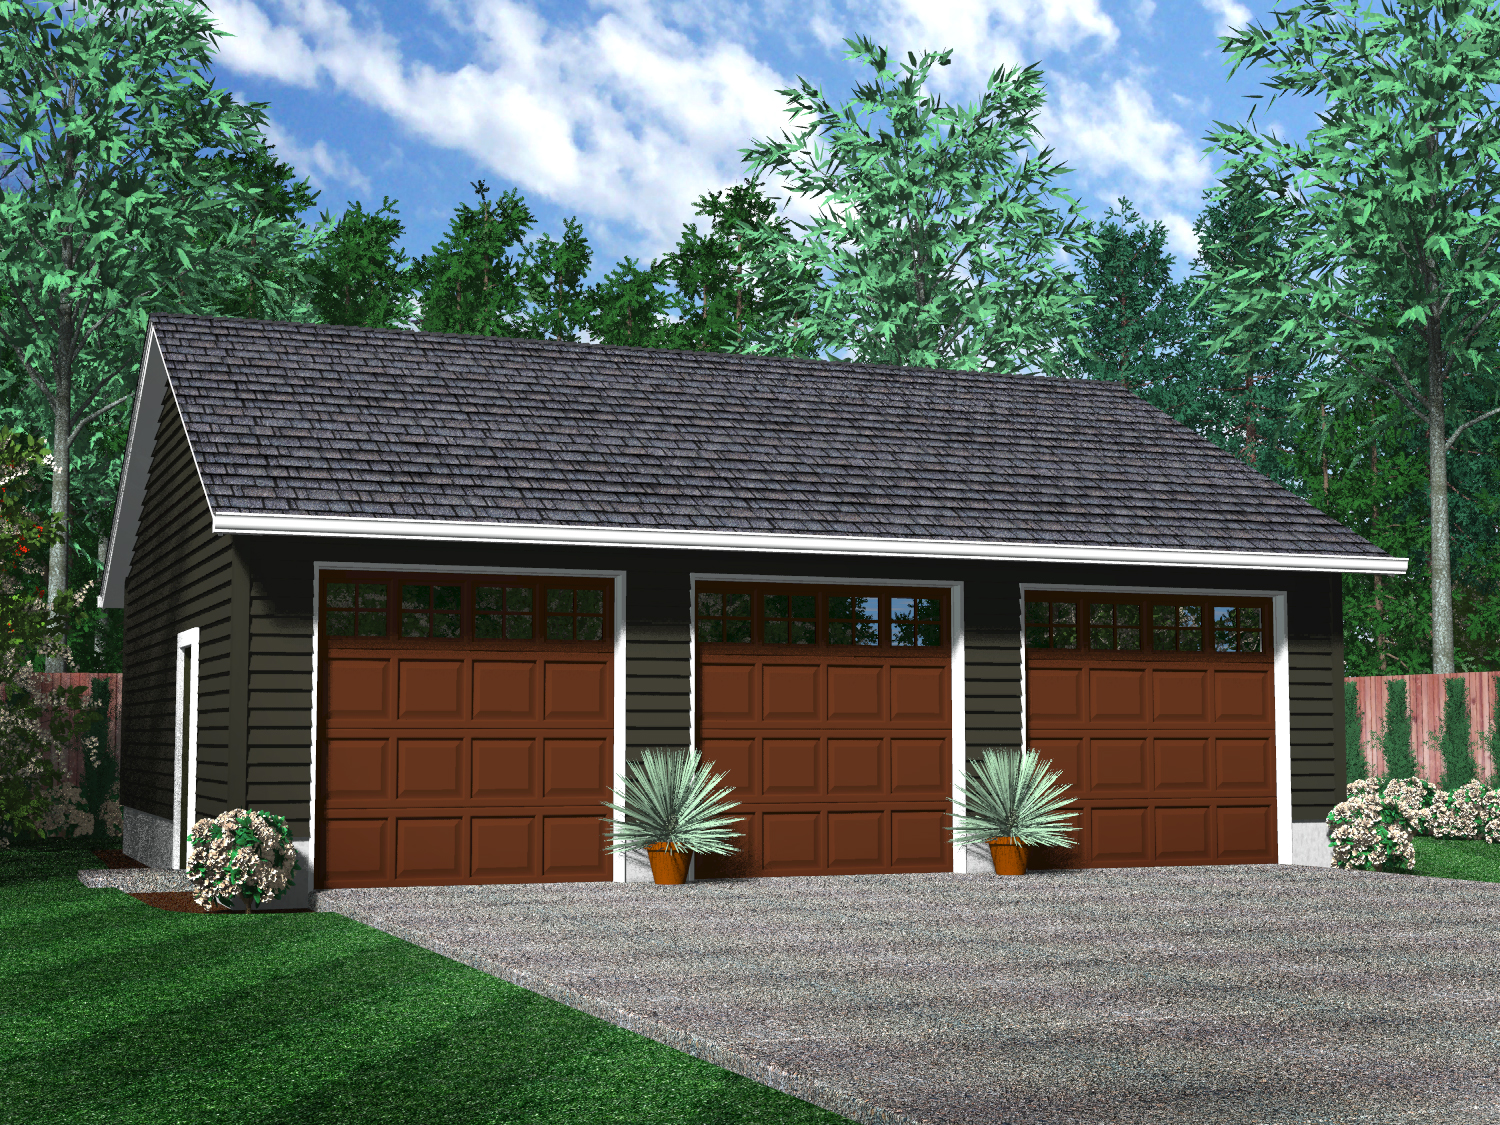 Detached garages Triple car garage house plans